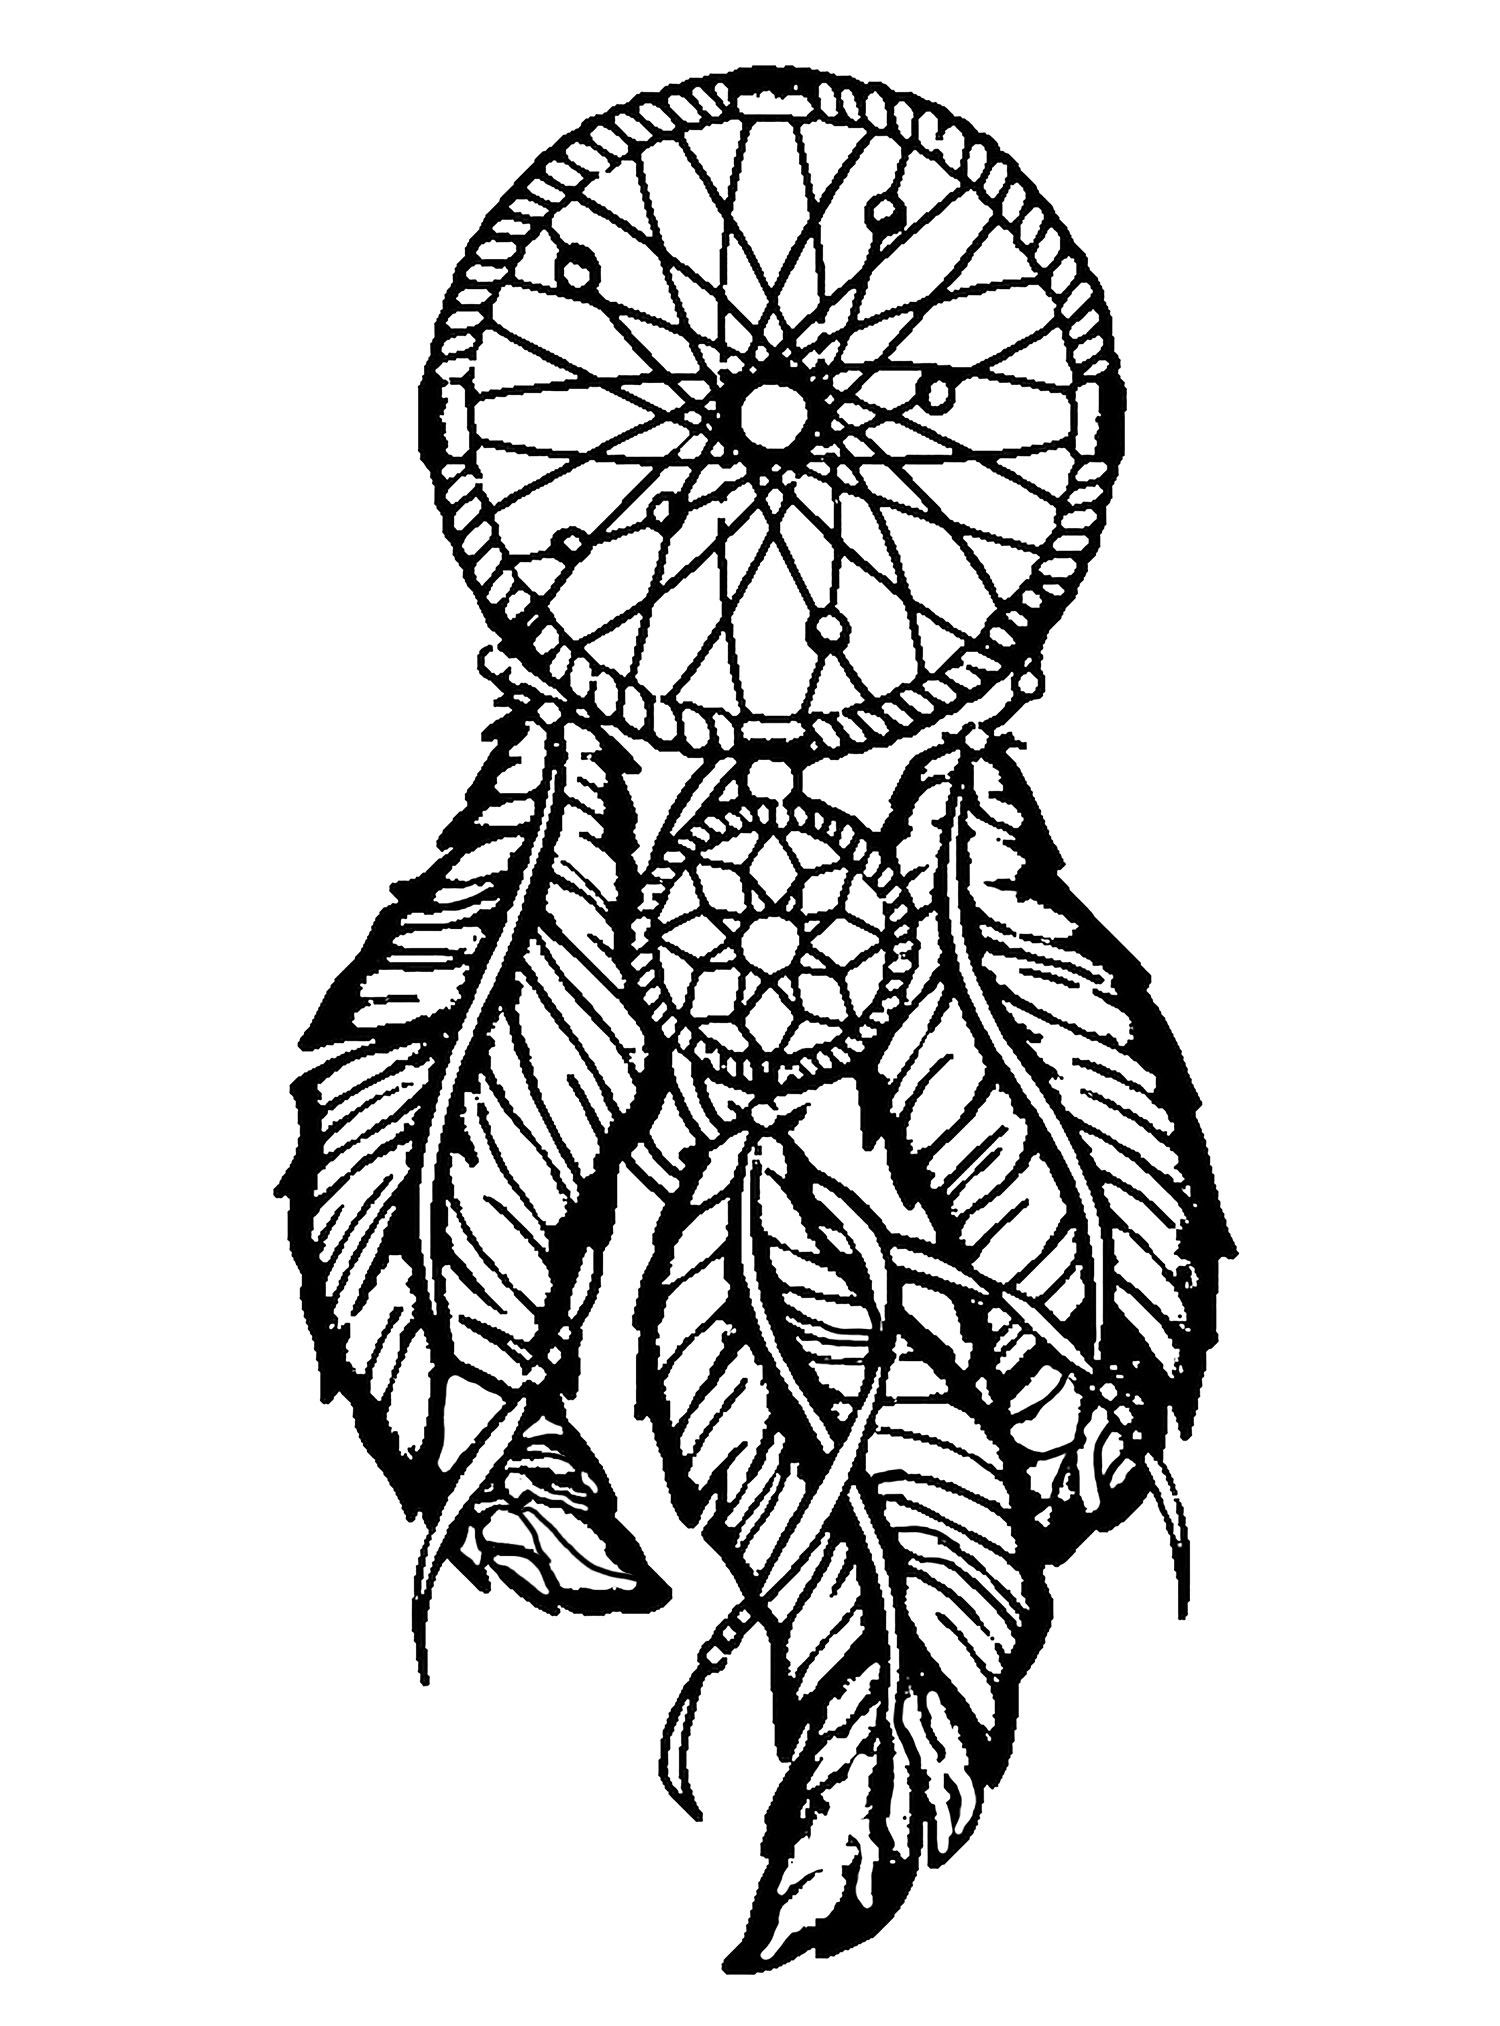 Dreamcatcher to print and color : big feathersFrom the